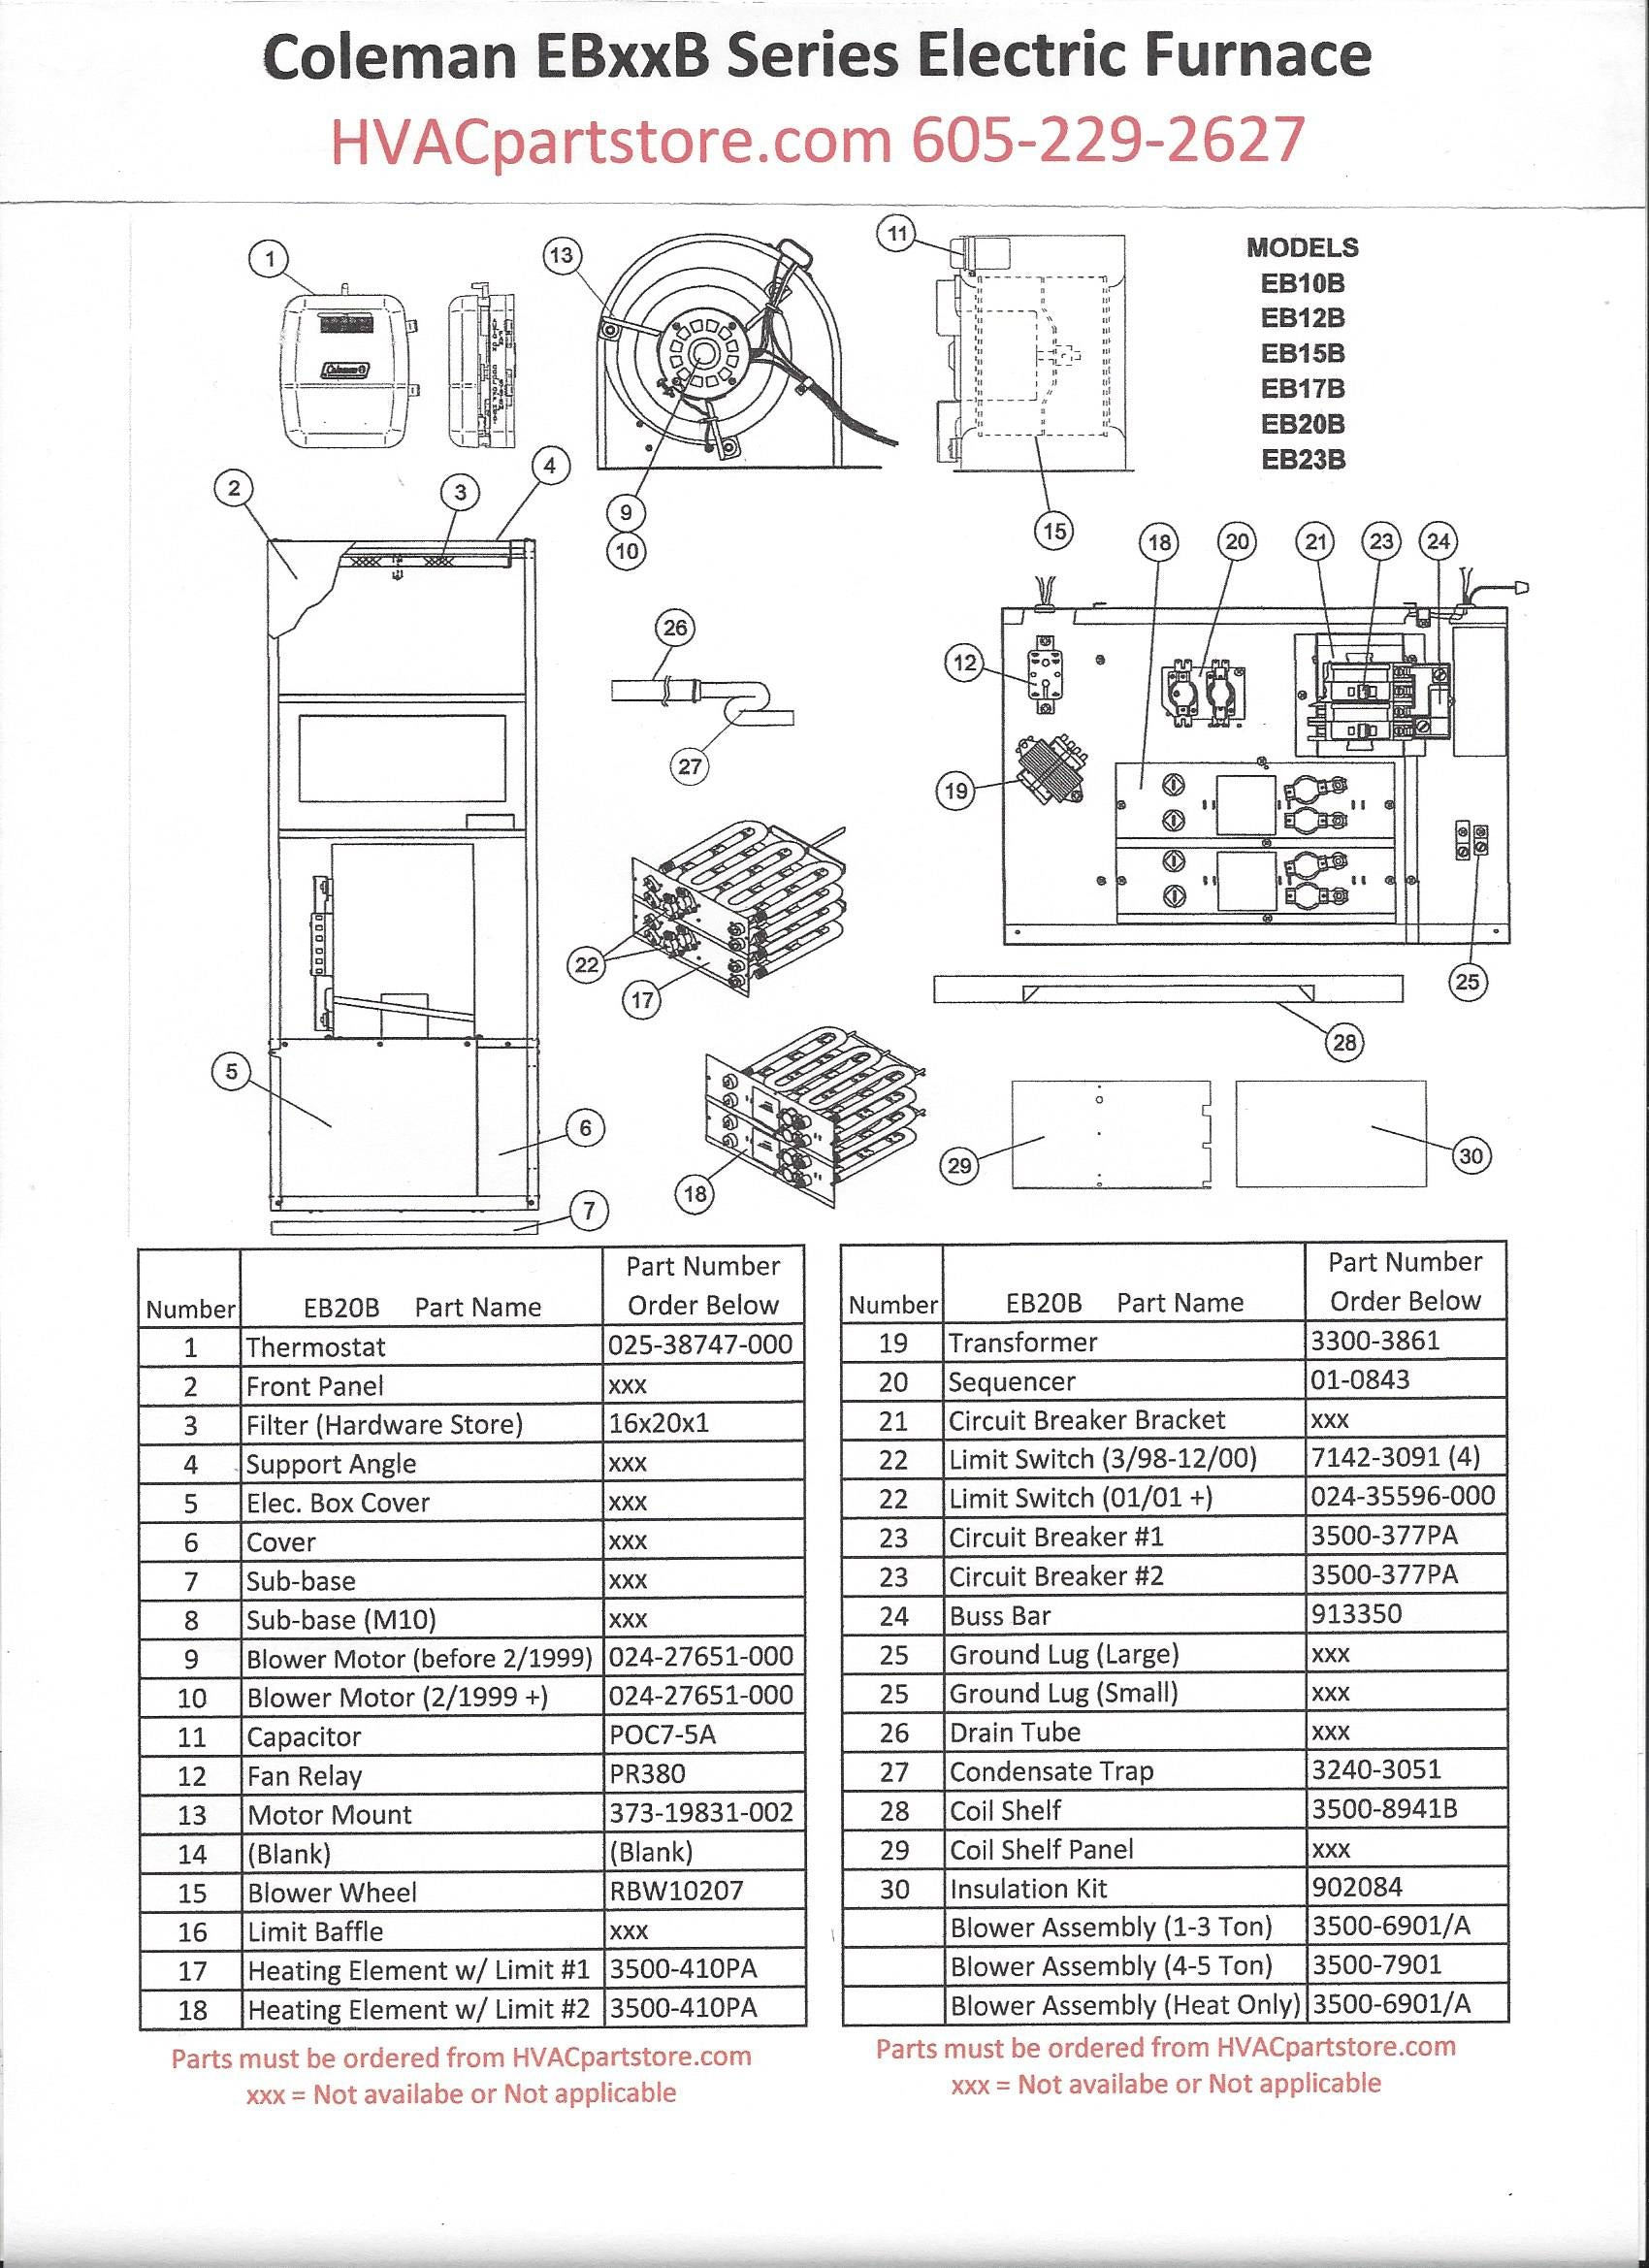 Heat Sequencer Wiring Diagram also Coleman Mobile Home Furnace Wiring Diagram additionally Ideas For The House furthermore Trane Air Conditioner Parts Manual additionally Goodman Furnace Wiring Diagram. on bryant heat pump wiring diagram